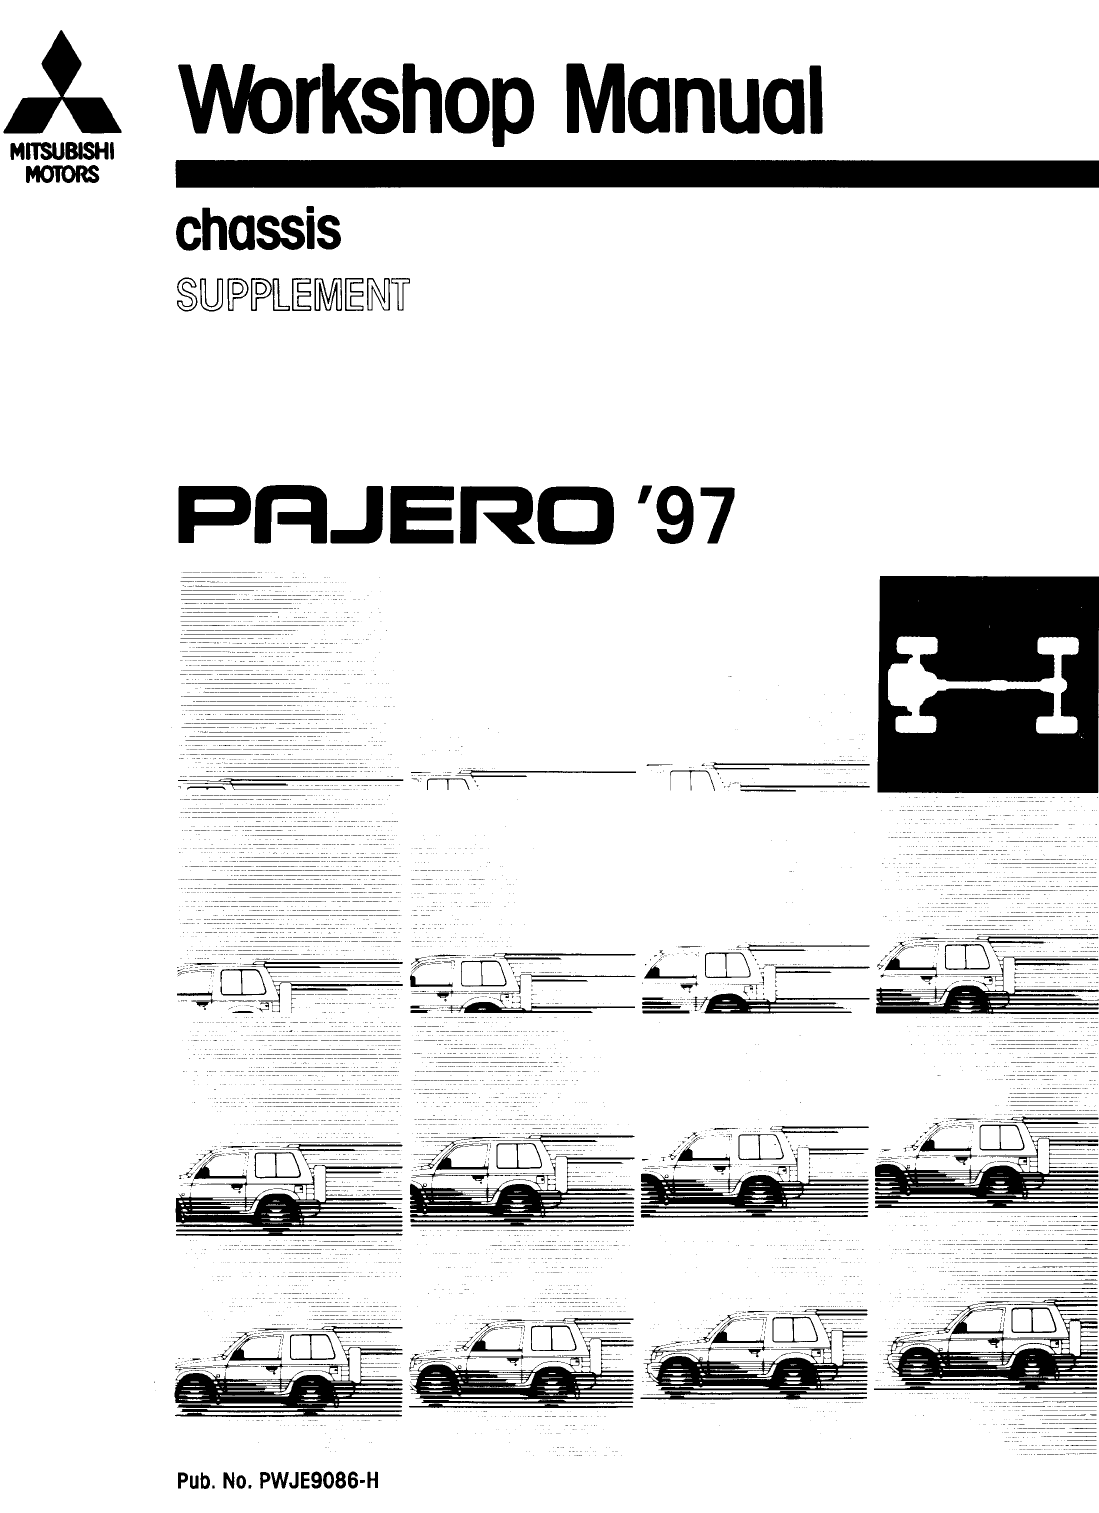 See our other Mitsubishi Pajero Manuals: